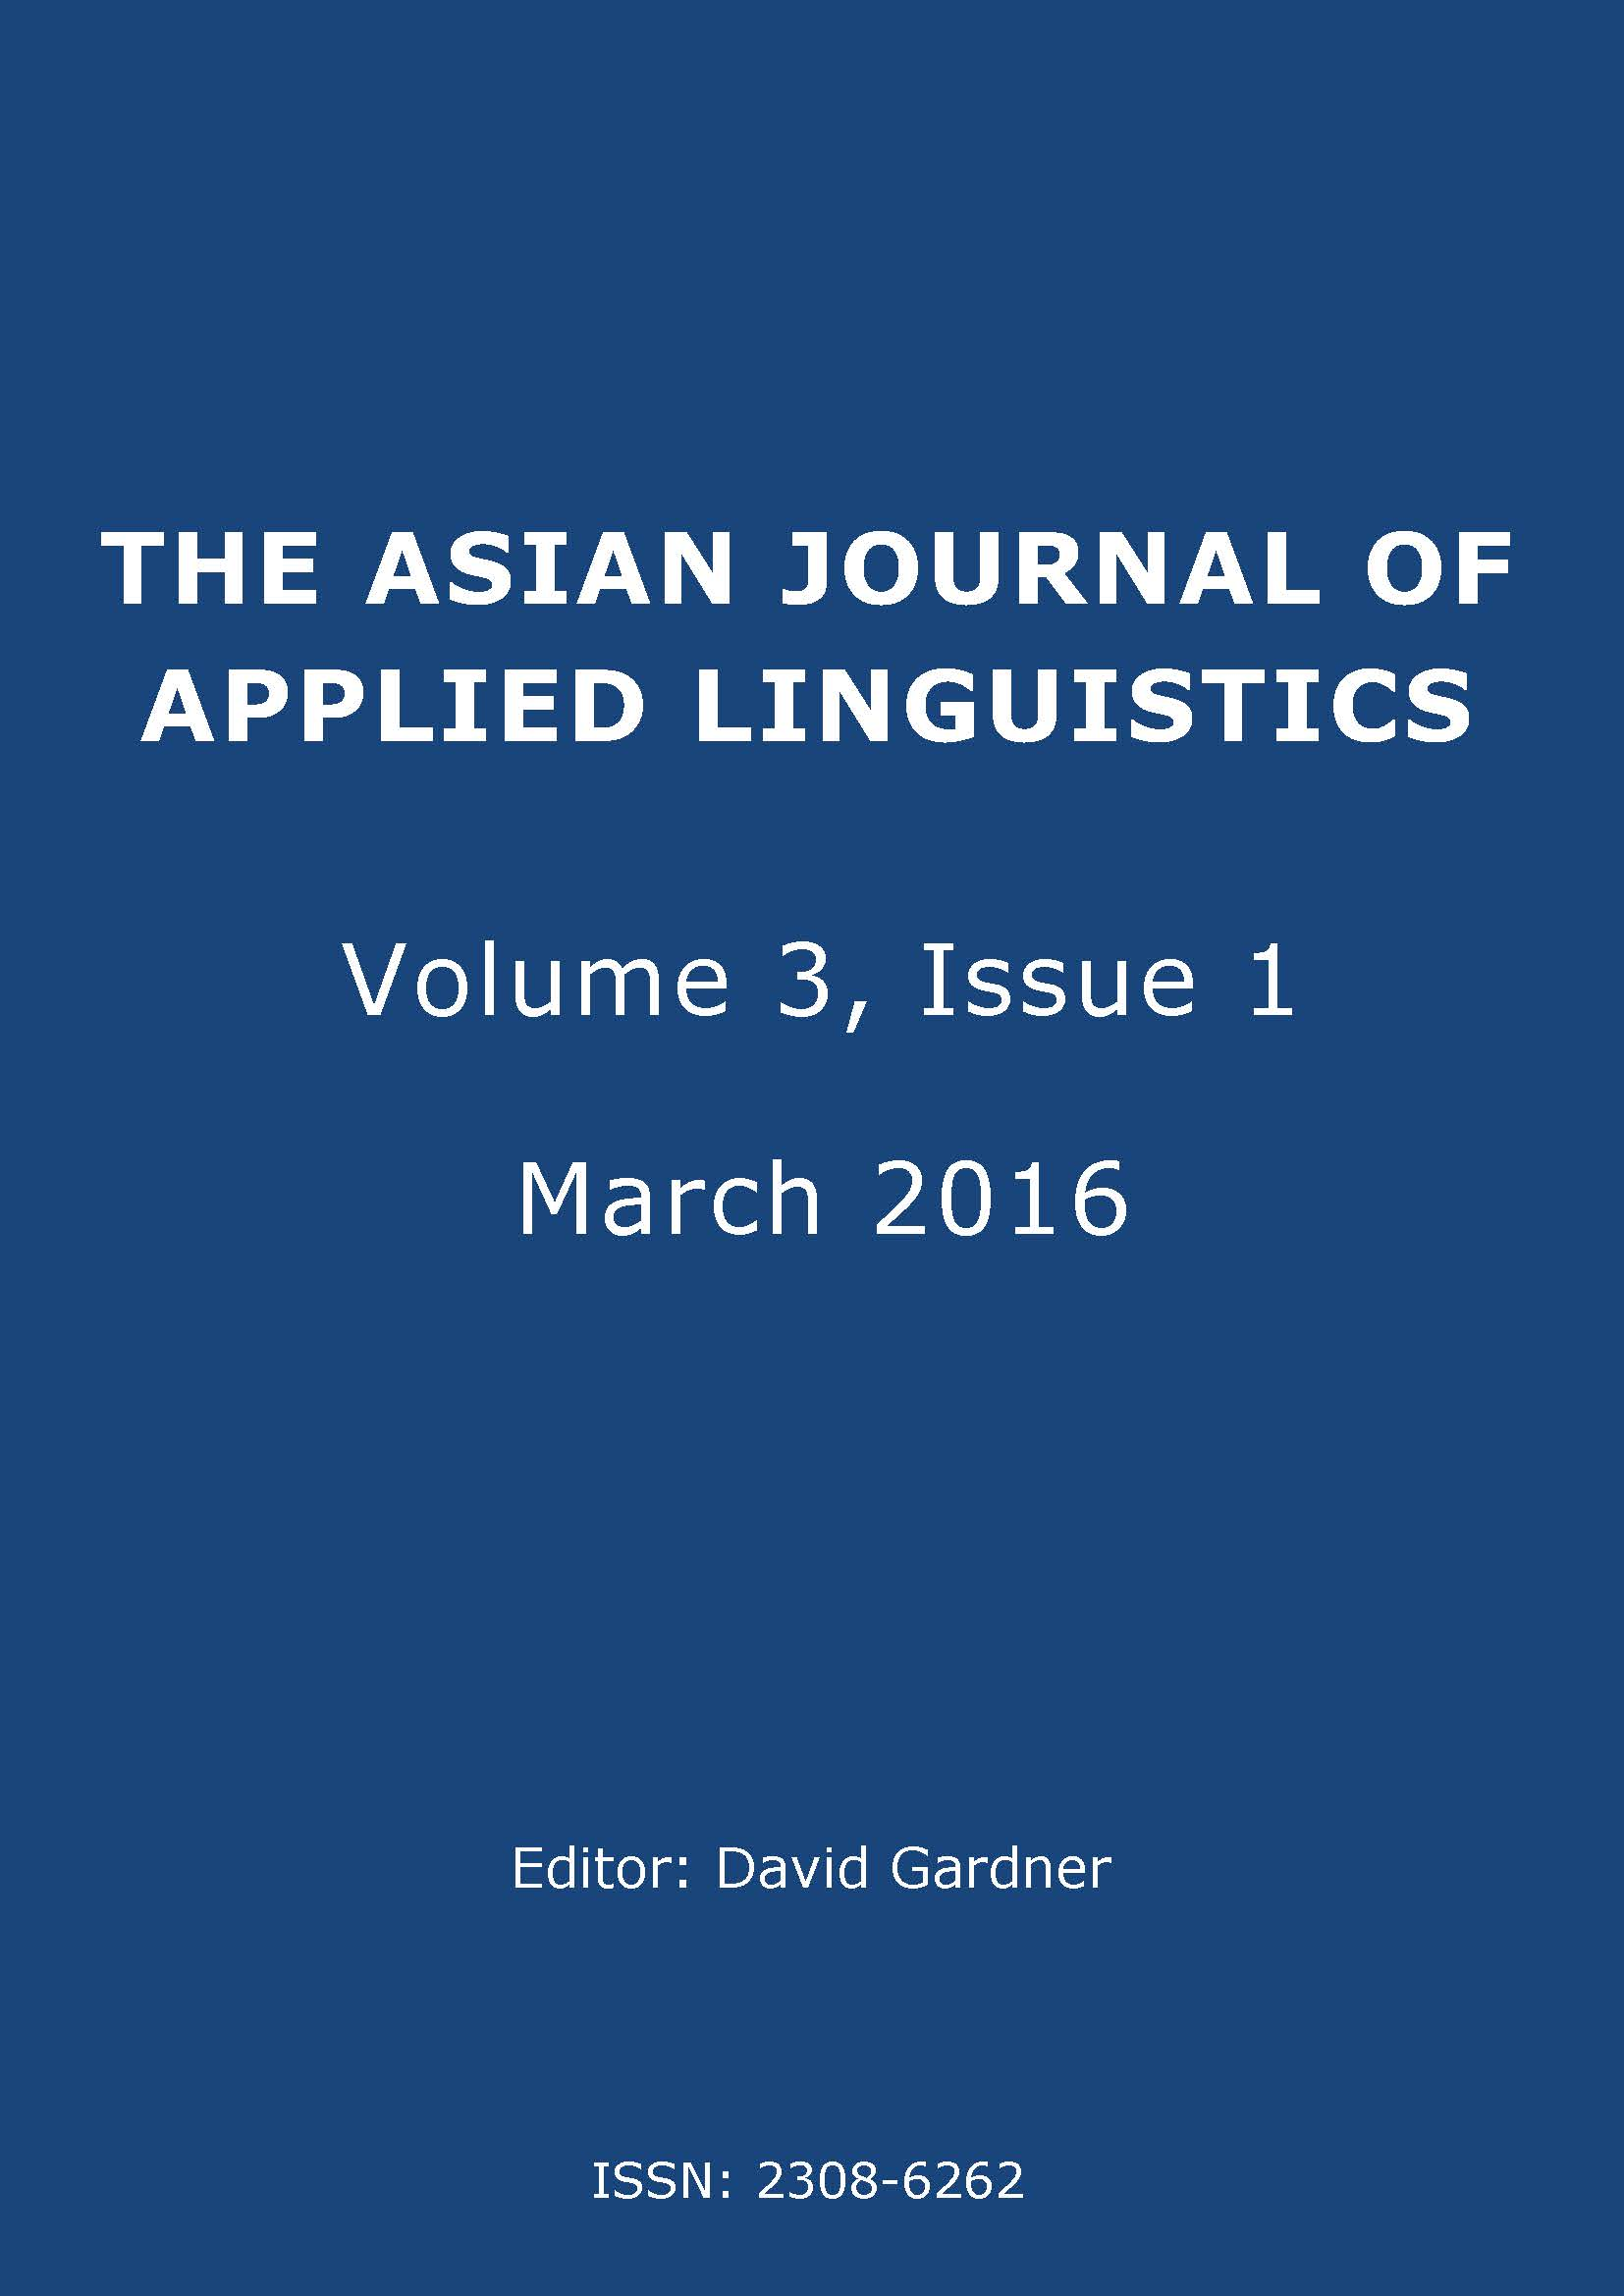 The Asian Journal of Applied Linguistics. Volume 3. Issue 1. March 2016